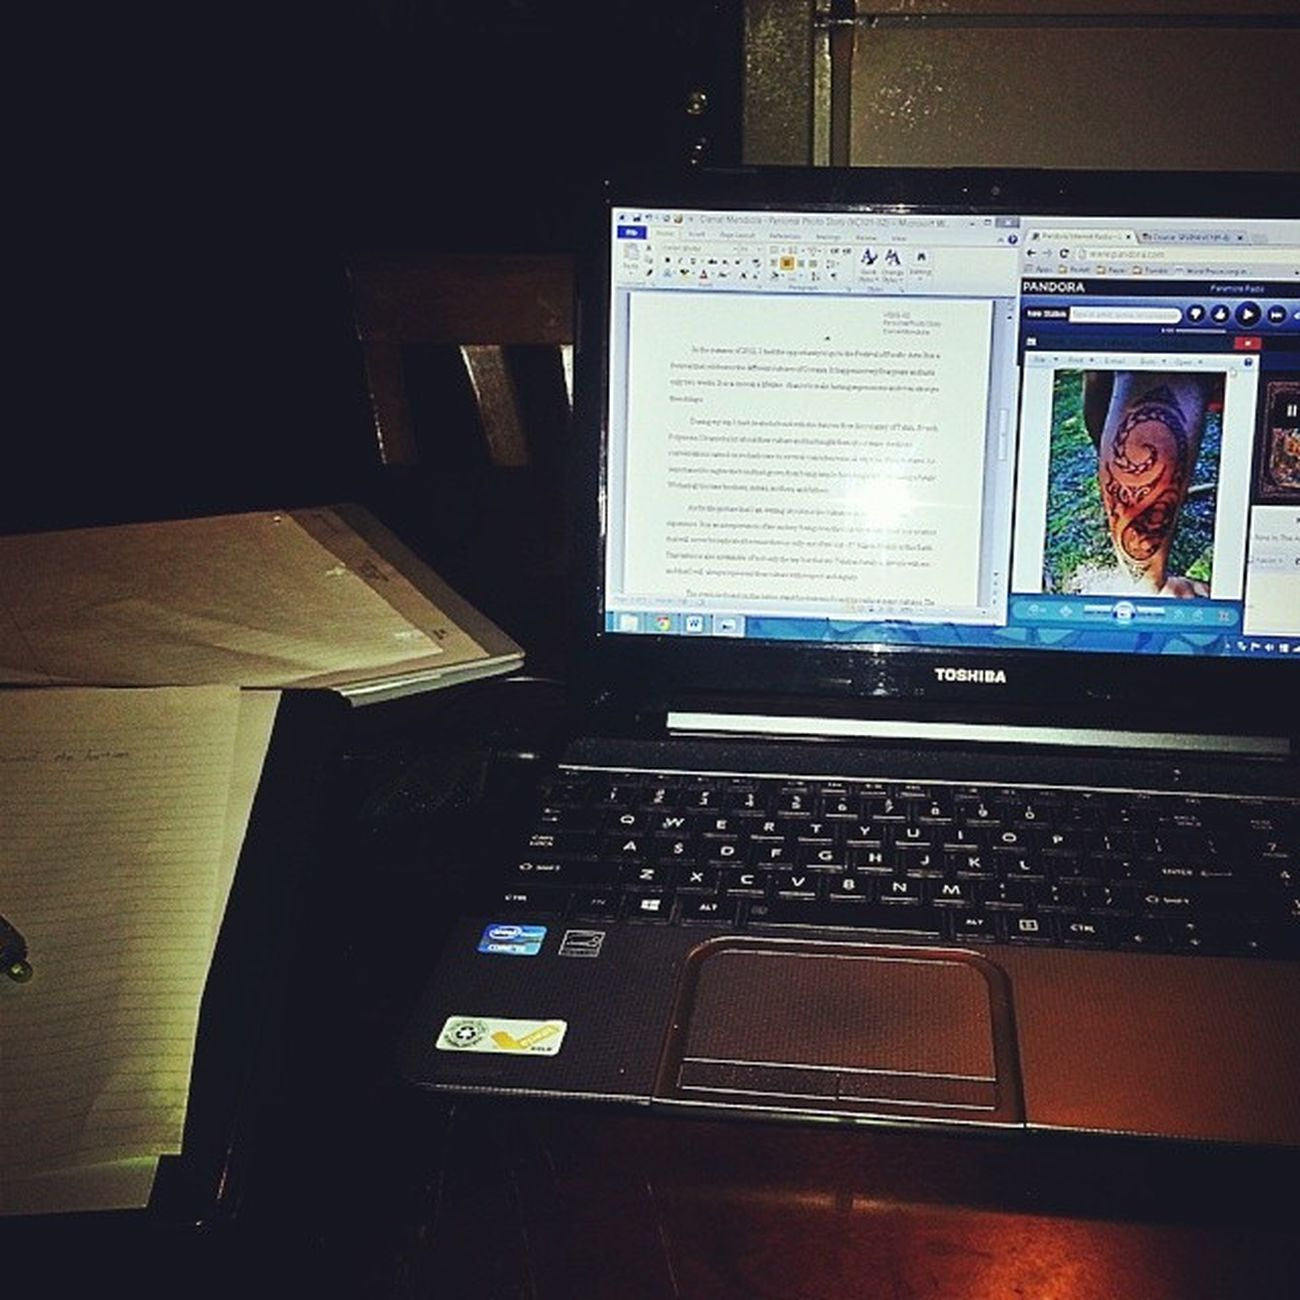 Putting in work. Highereducation Notimeforsleep